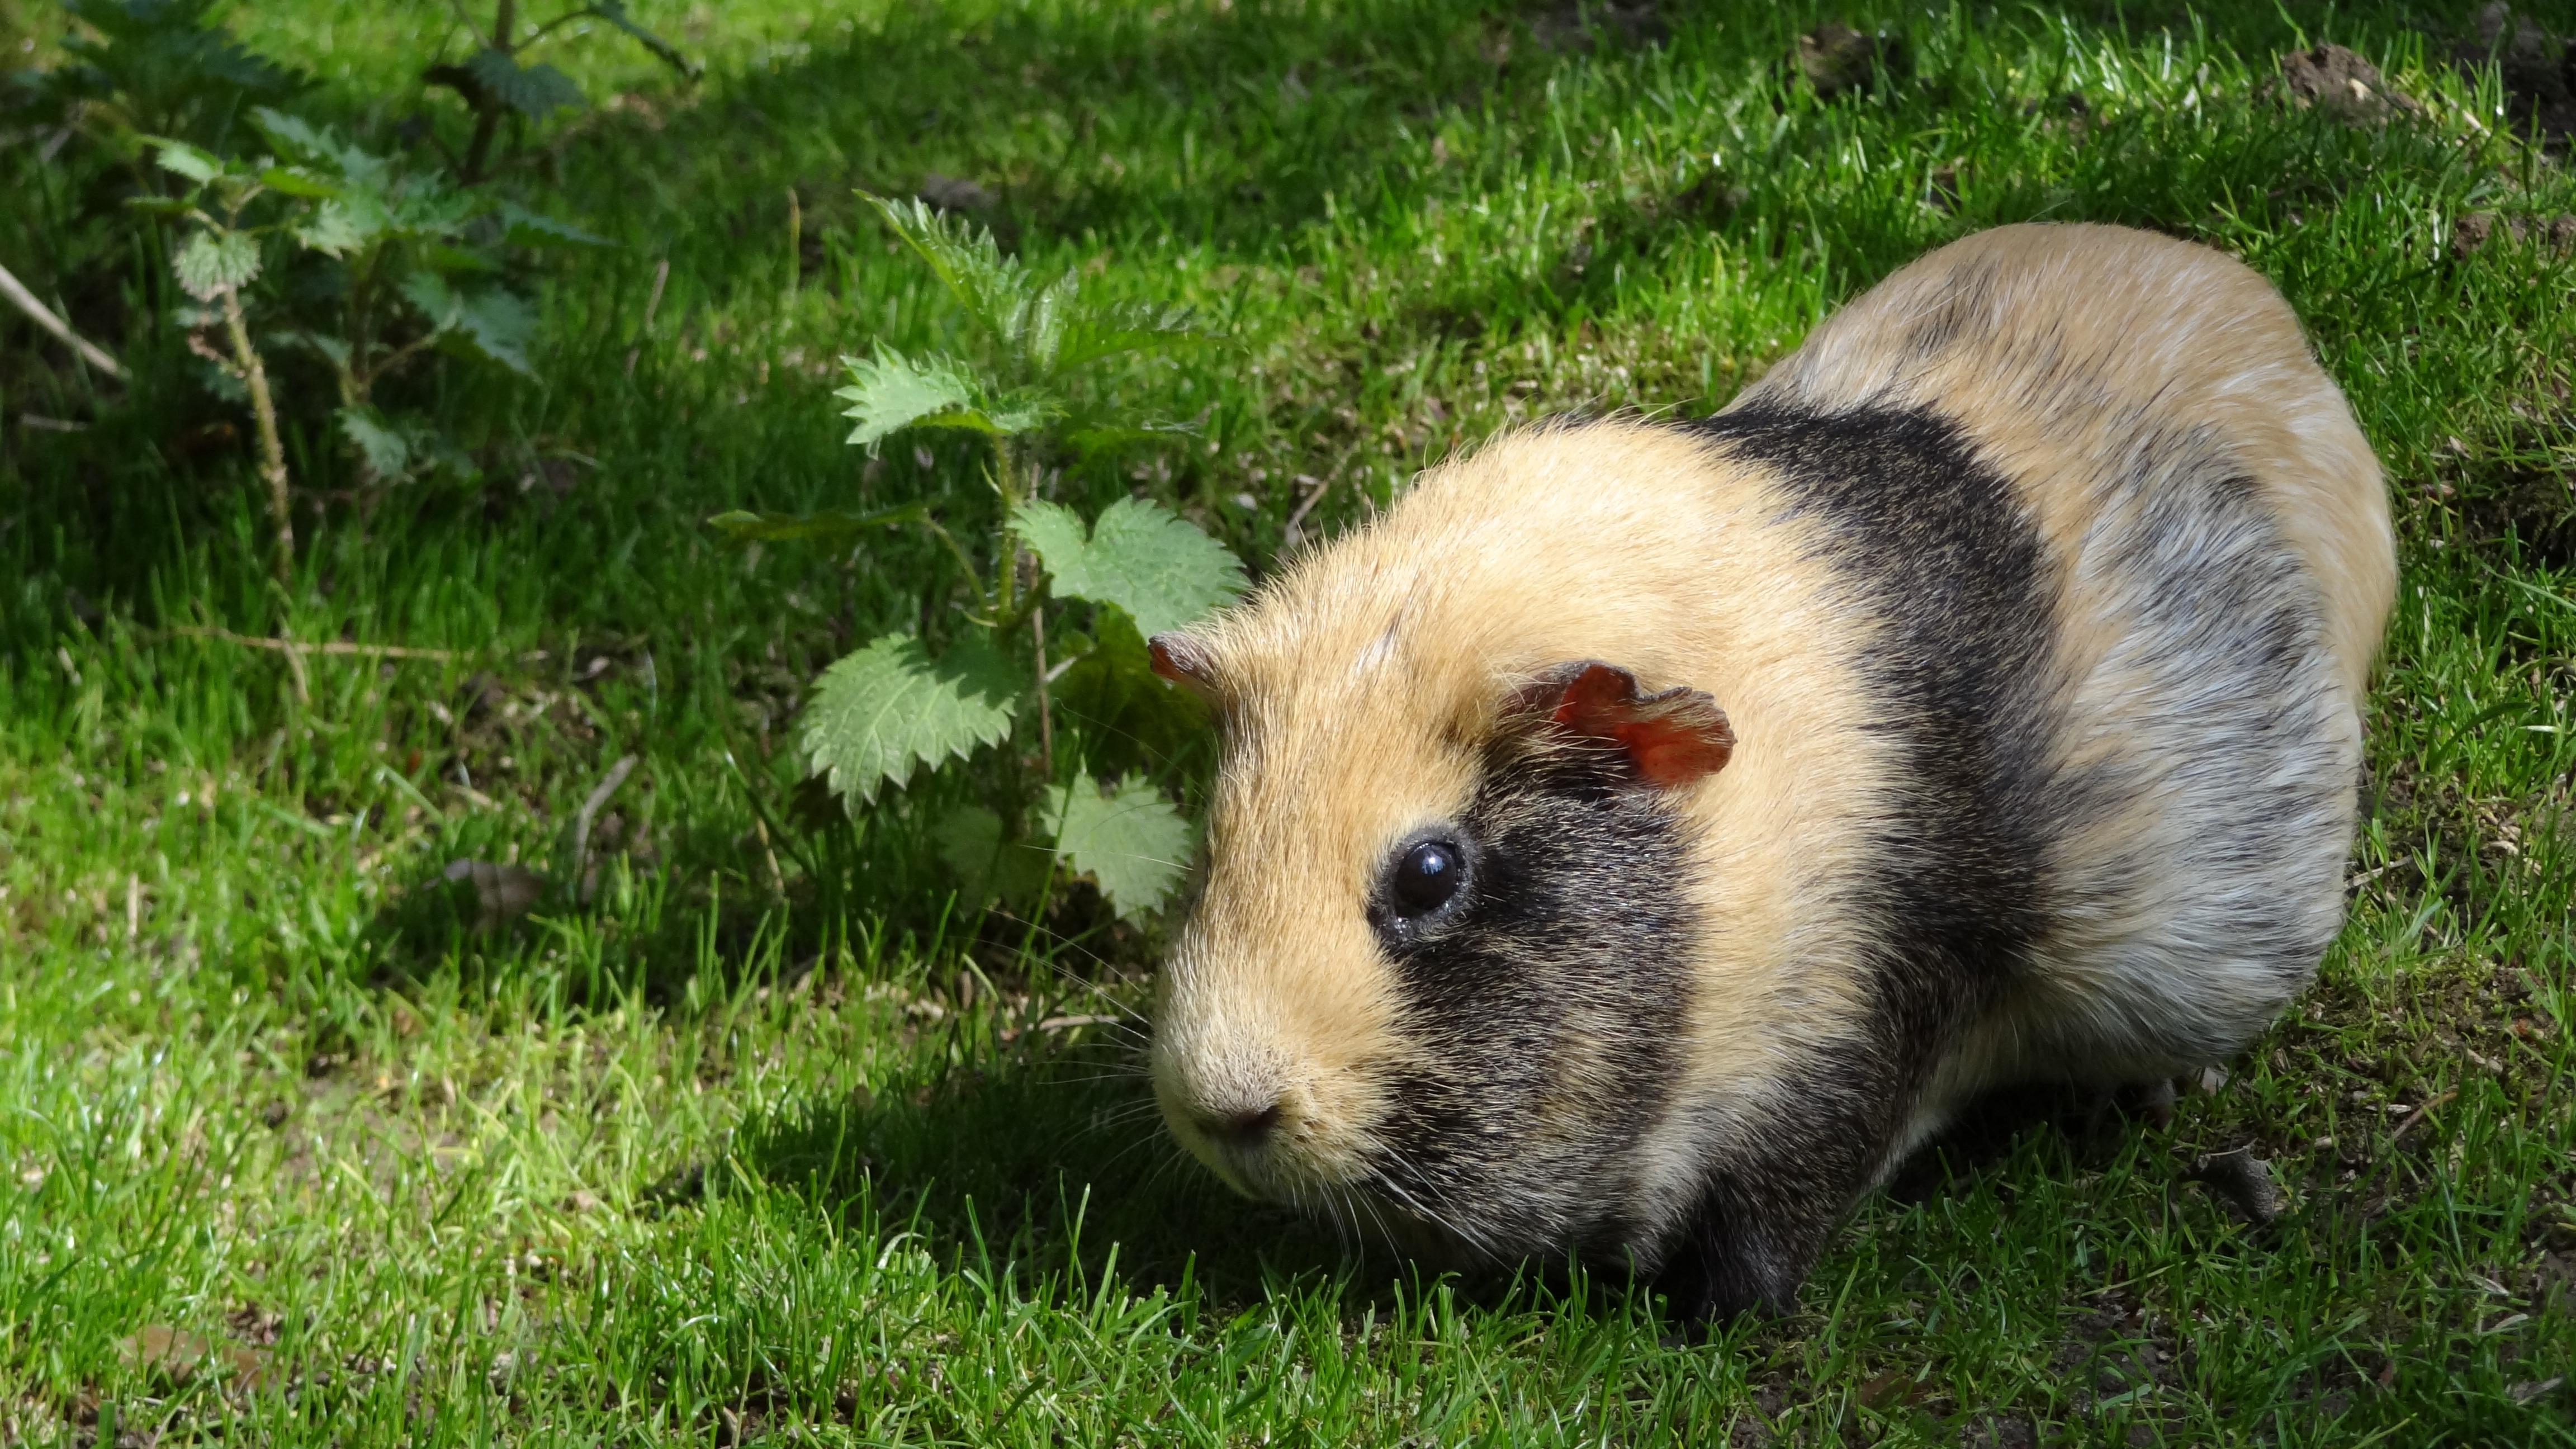 Free stock photo of animal cute guinea pig for Free guinea pig stuff